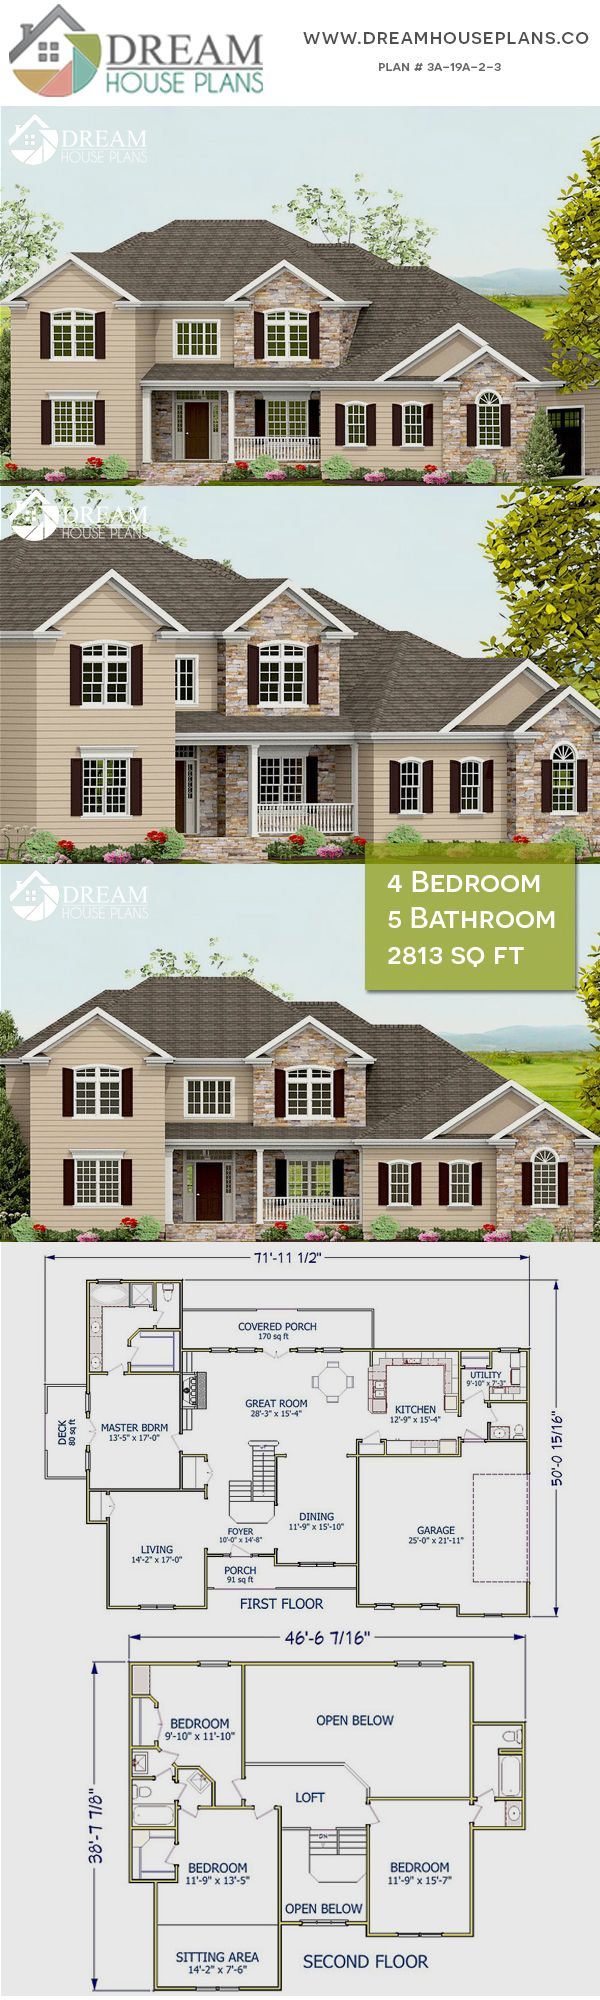 Dream House Plans Best Traditional 4 Bedroom 2813 Sq Ft Home Plan With Wrap Around Porch We Cust New House Plans Dream House Plans Craftsman House Plans